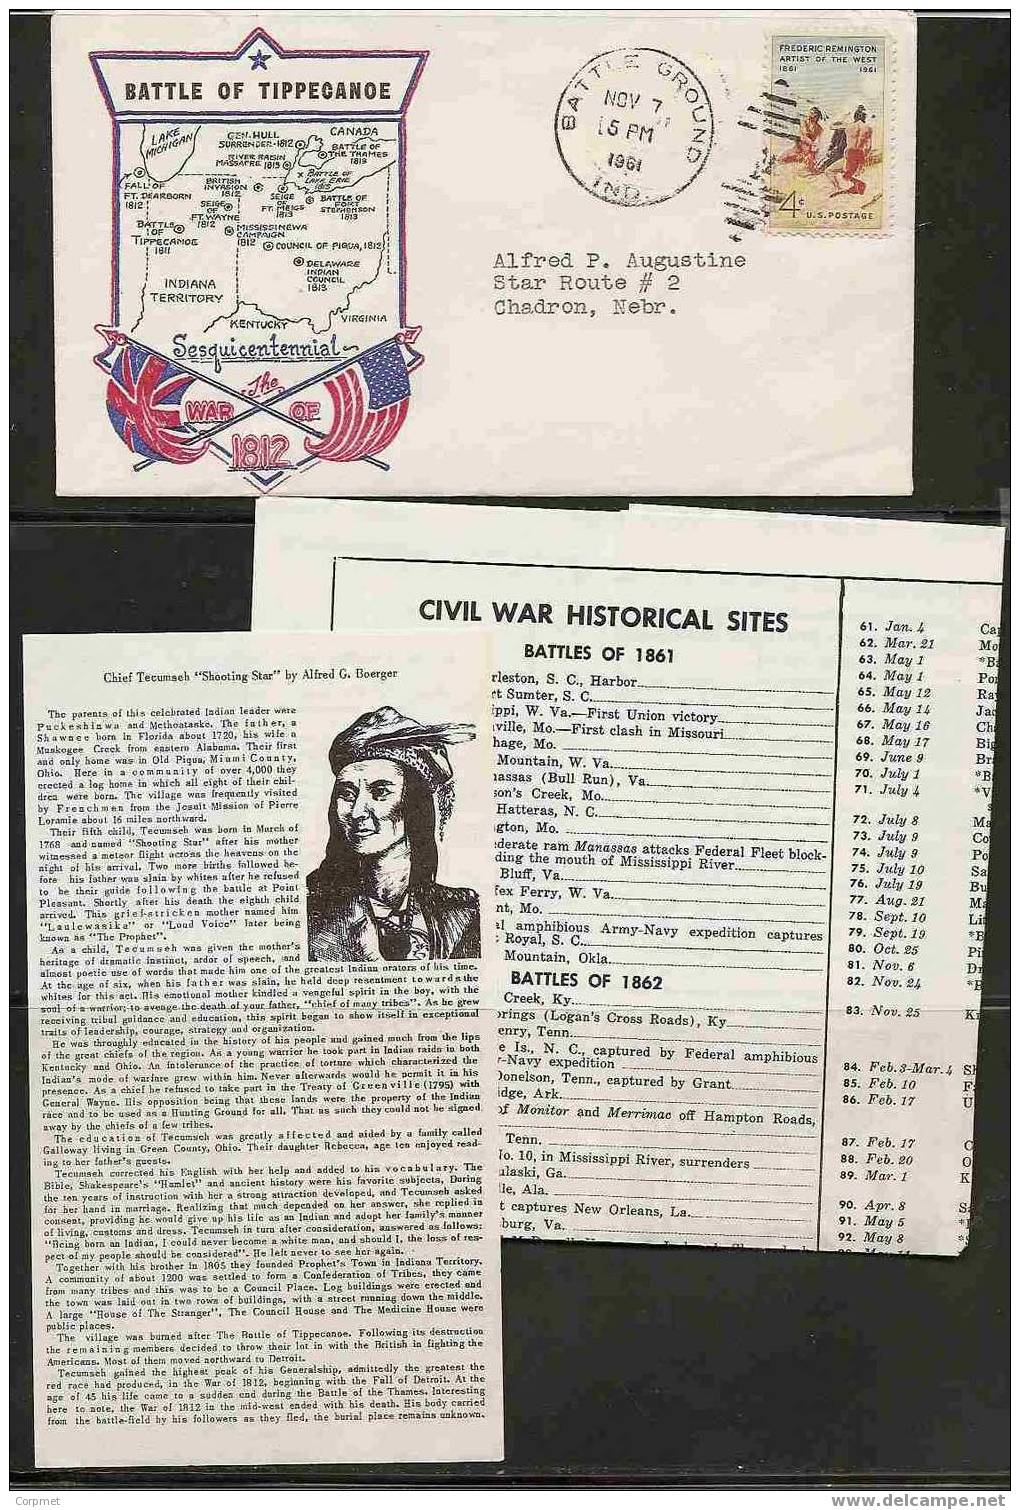 US - 150th ANNIV BATTLE OF TIPPECANOE - 1812 WAR  COMM  CACHETED COVER W/ Cards Battle Explanation - American Indians